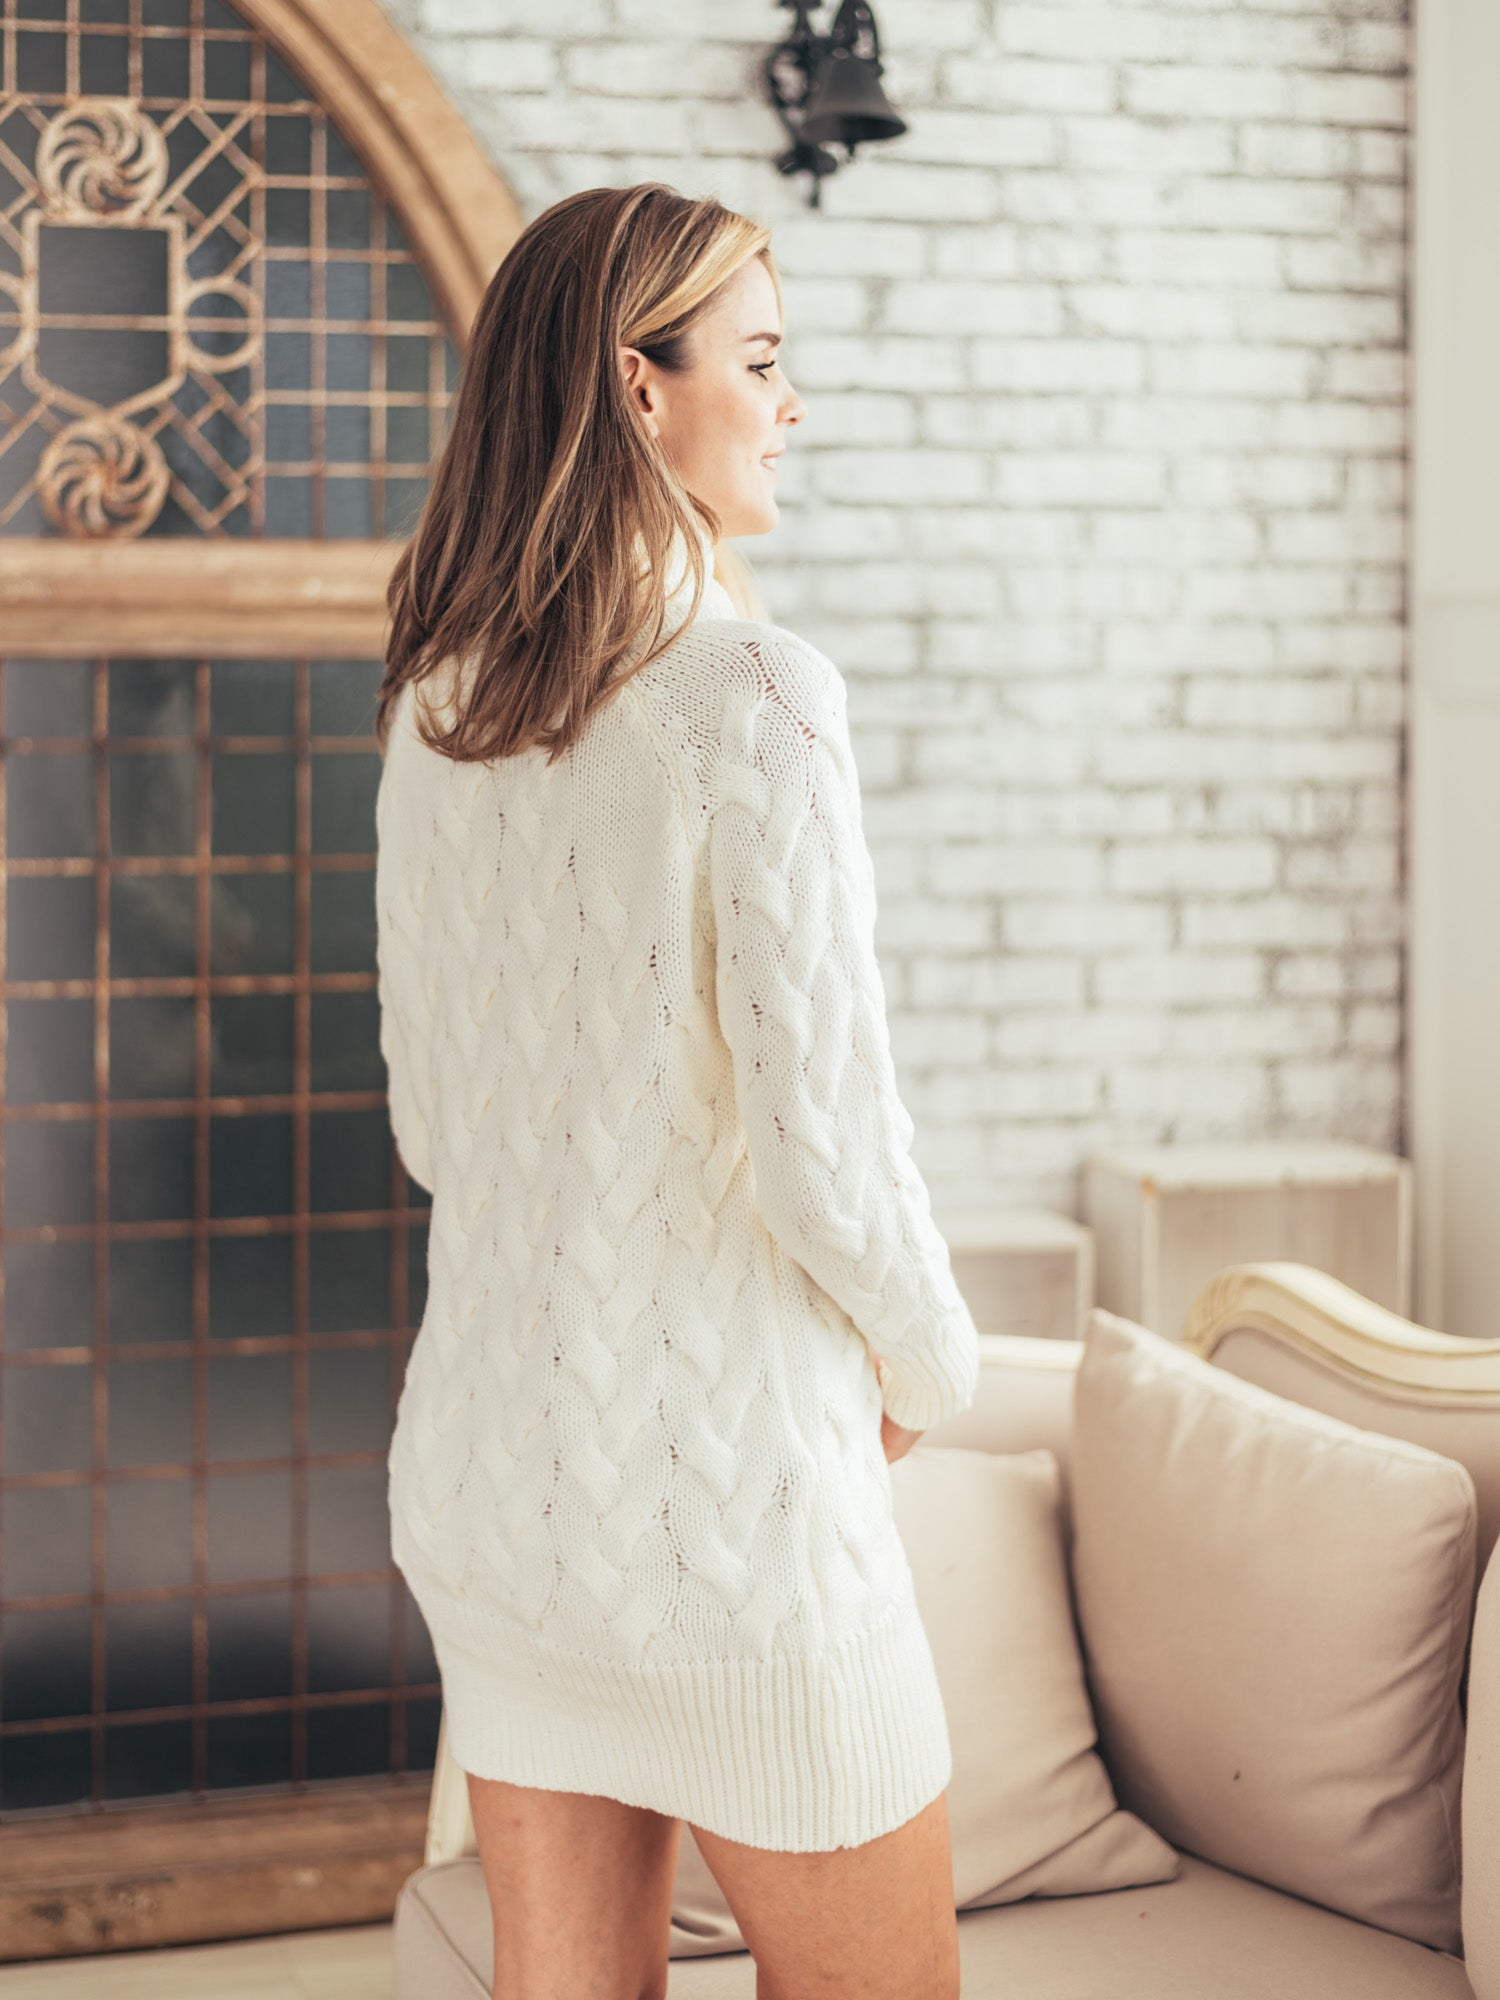 'Zenaida' White Cable-knit Dress